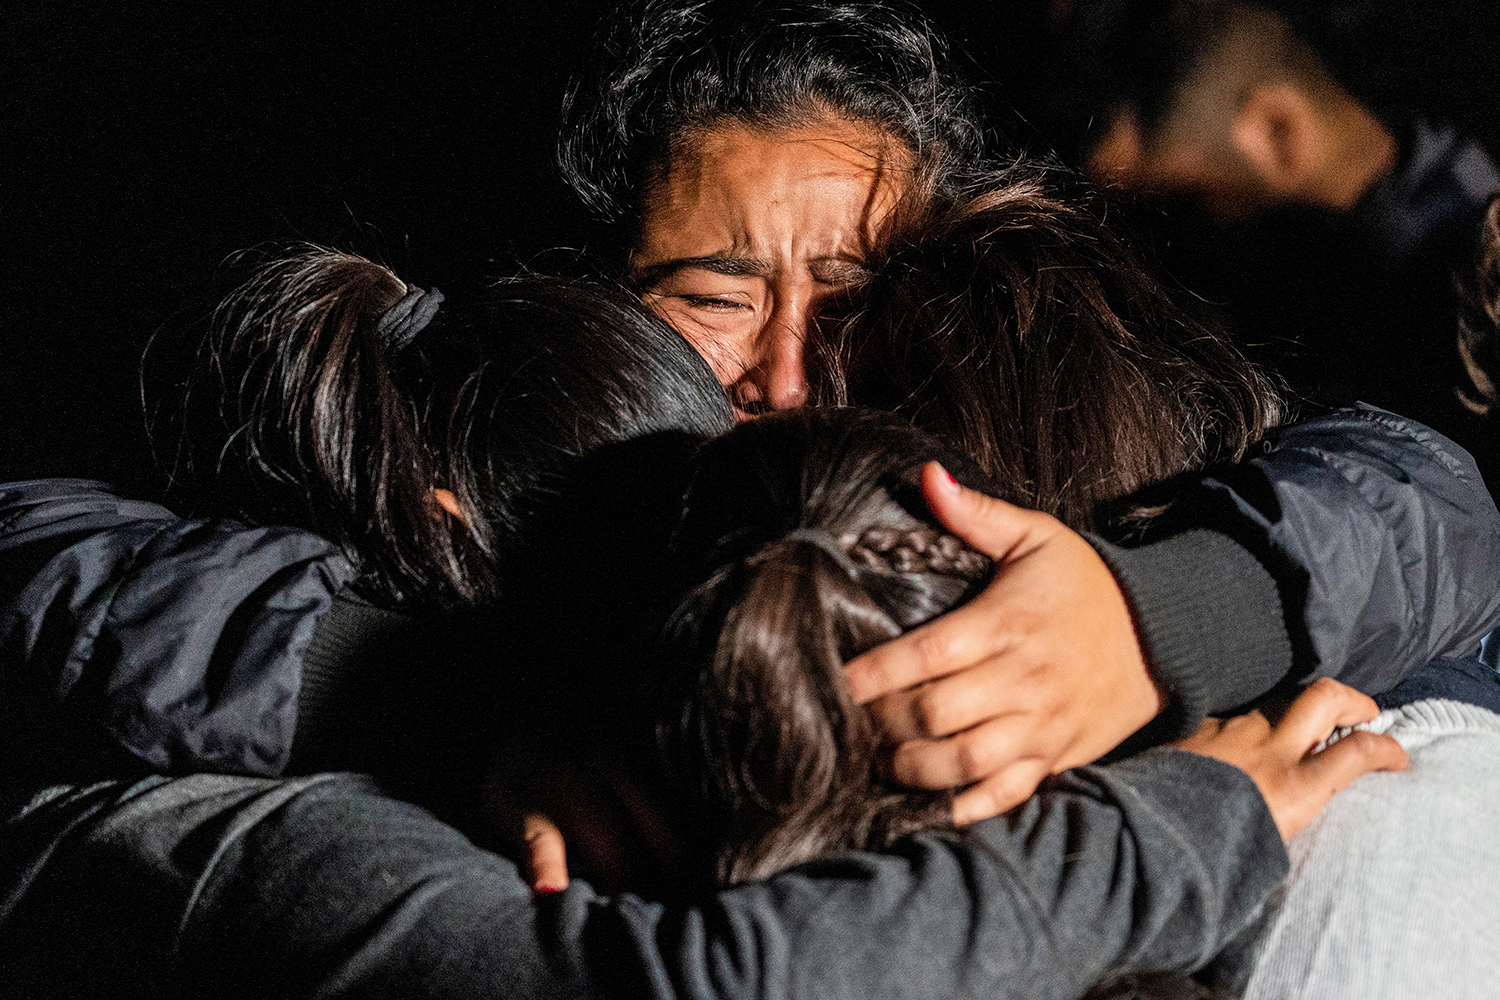 Asylum-seeking migrant families from Guatemala embrace after crossing the Rio Grande into Roma, Texas, from Mexico on April 20. Go Nakamura/Reuters